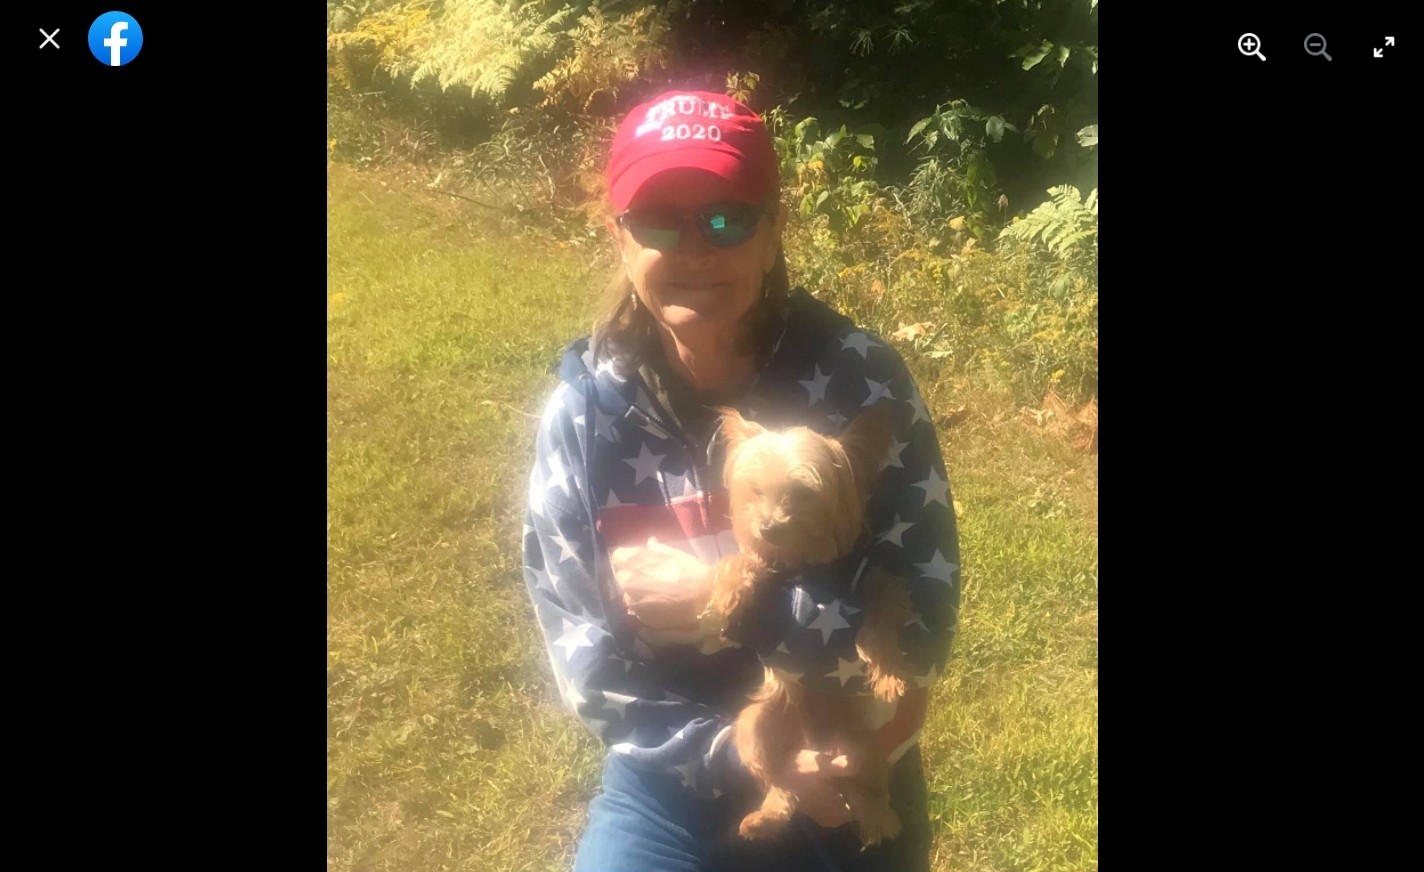 Screengrab from what seems to be the suspect's Facebook account. She is holding a small dog.